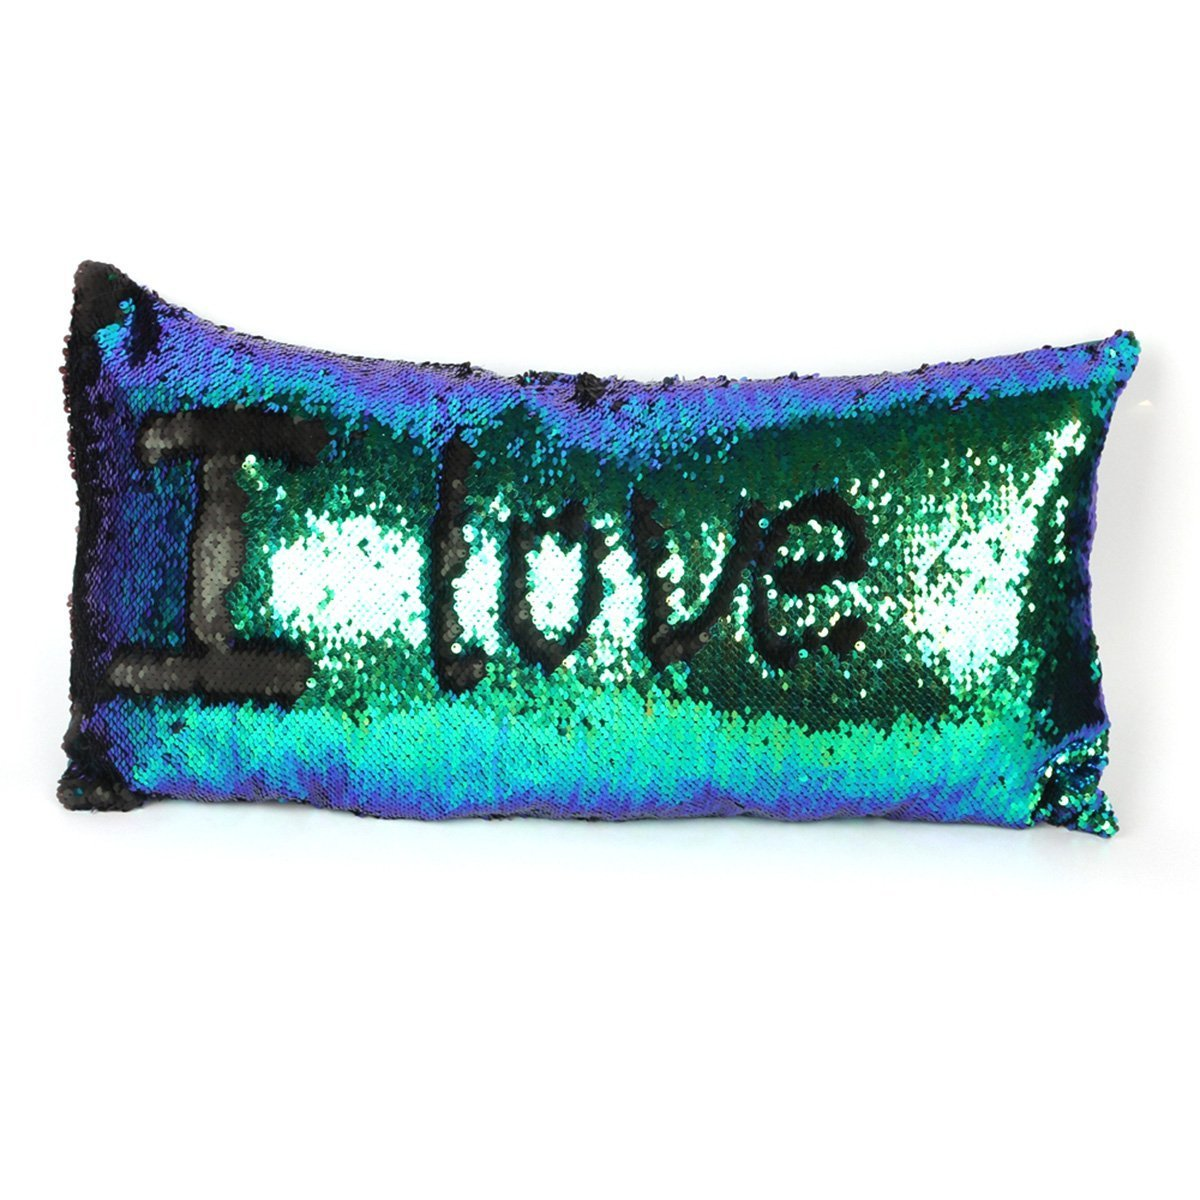 Ocosy Reversible 2 Colors Mermaid Pillow Case Sequins Pillow Cases Sofa Couch Cushion Cover Throw Pillow Case NO INSERT Hot Pink//Gold